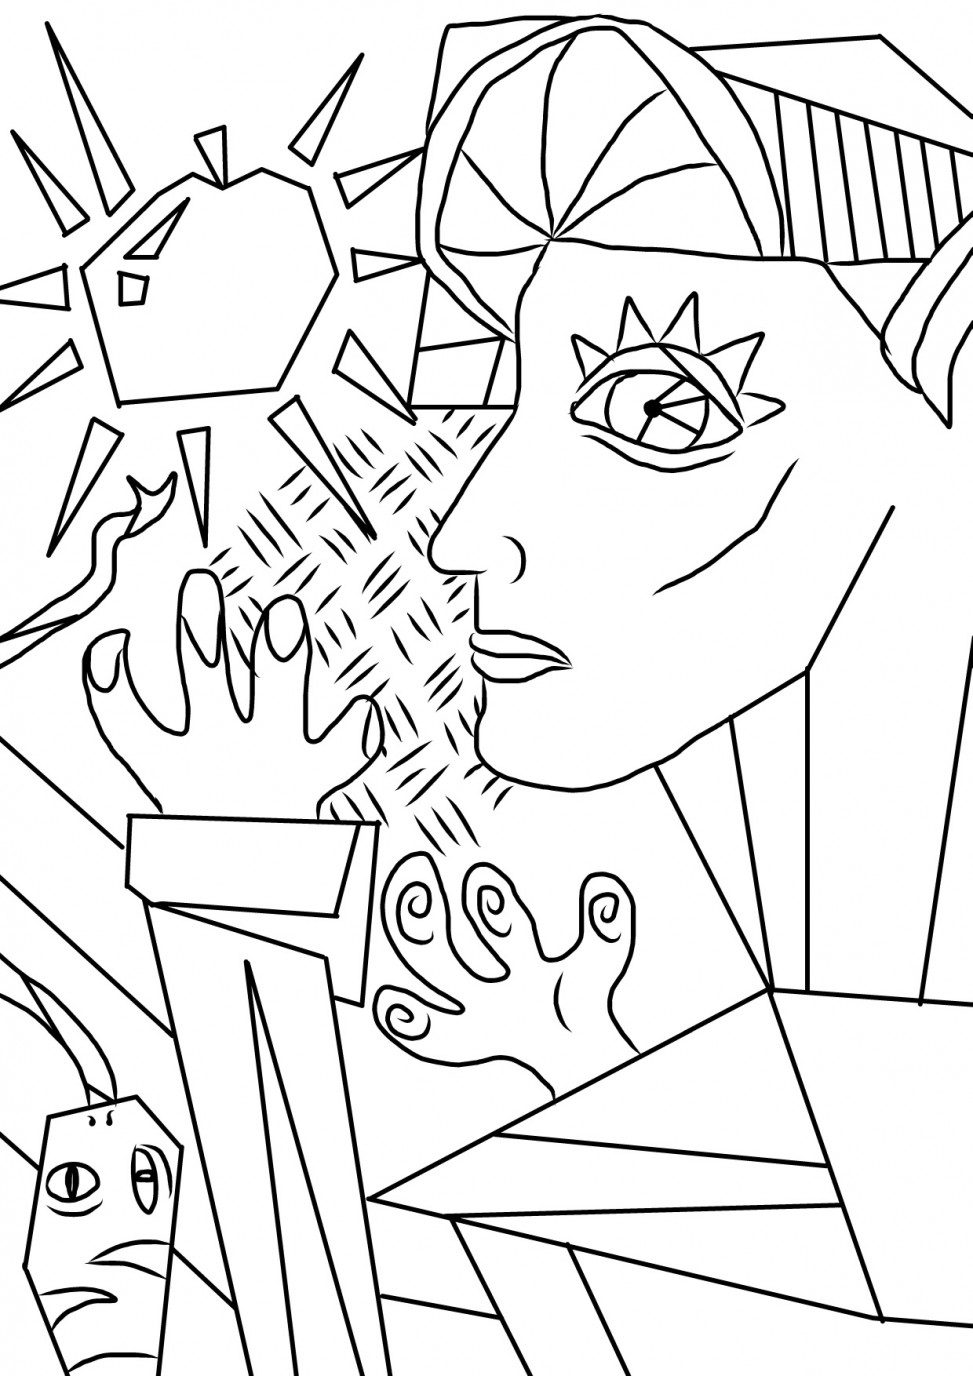 Eve colouring sheet